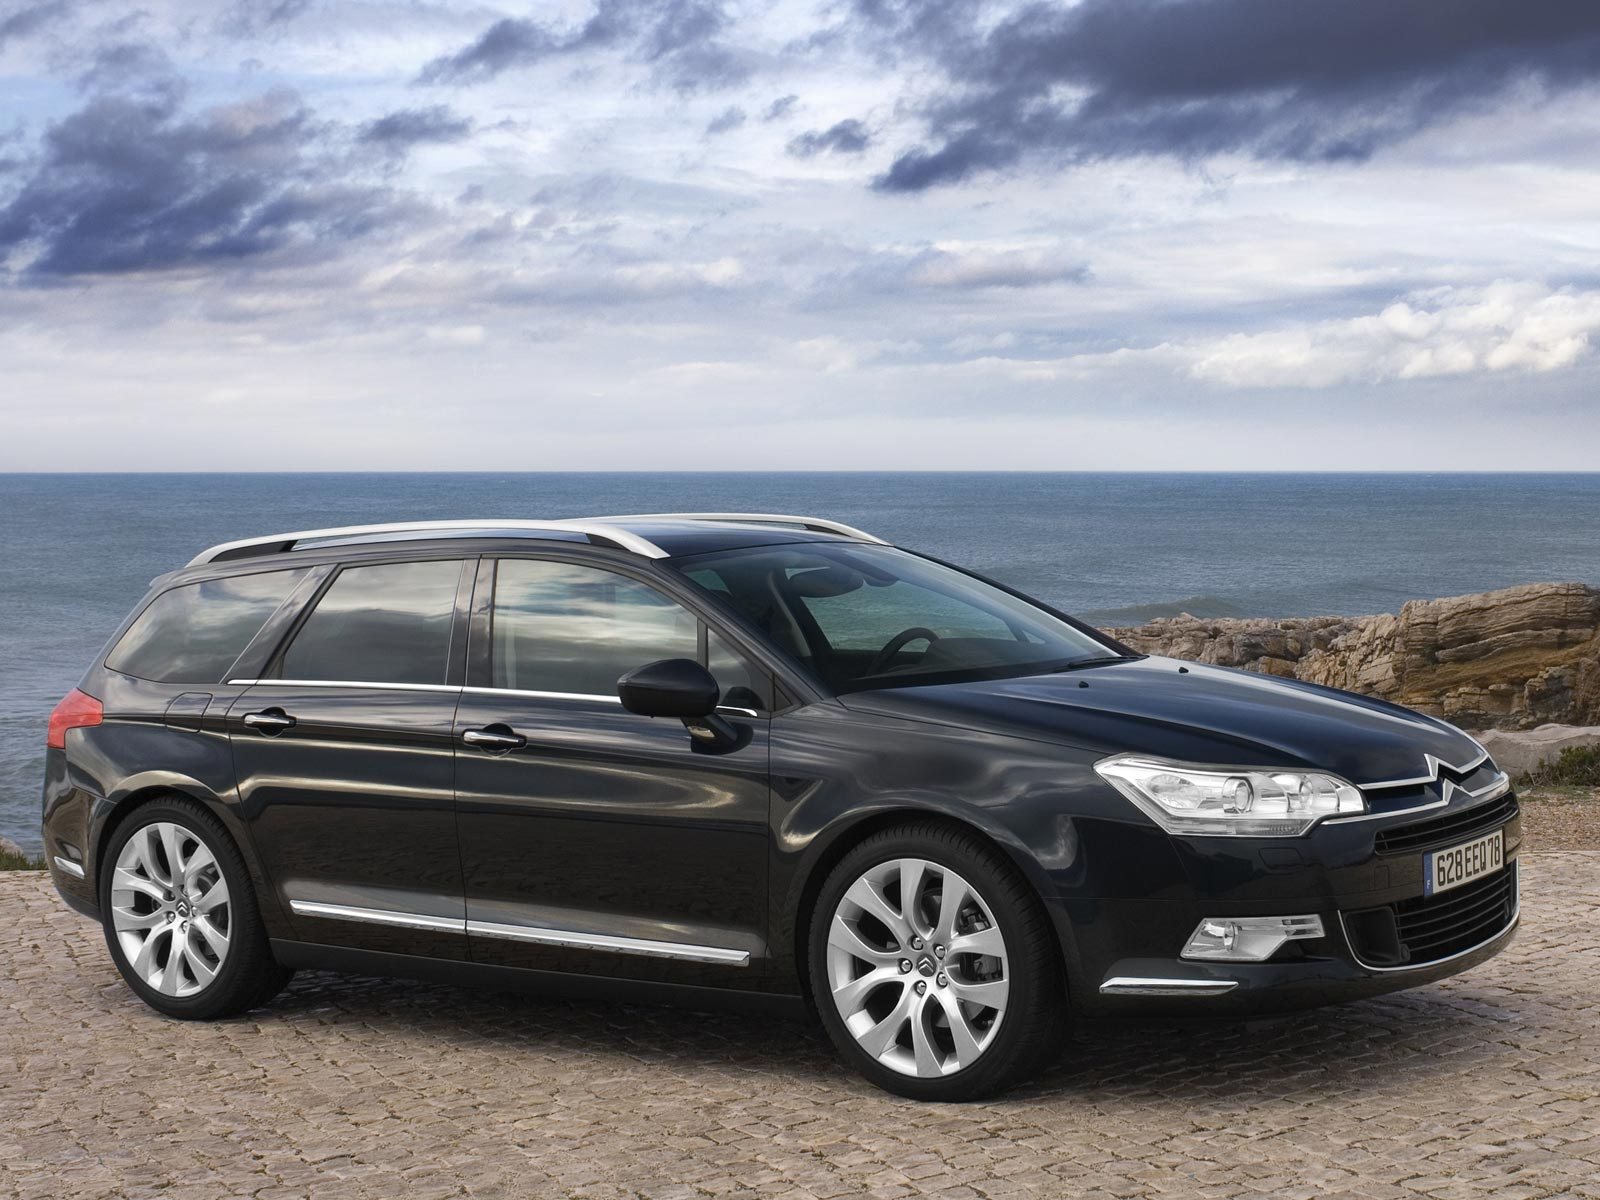 2019 Citroen C5 | Car Photos Catalog 2019